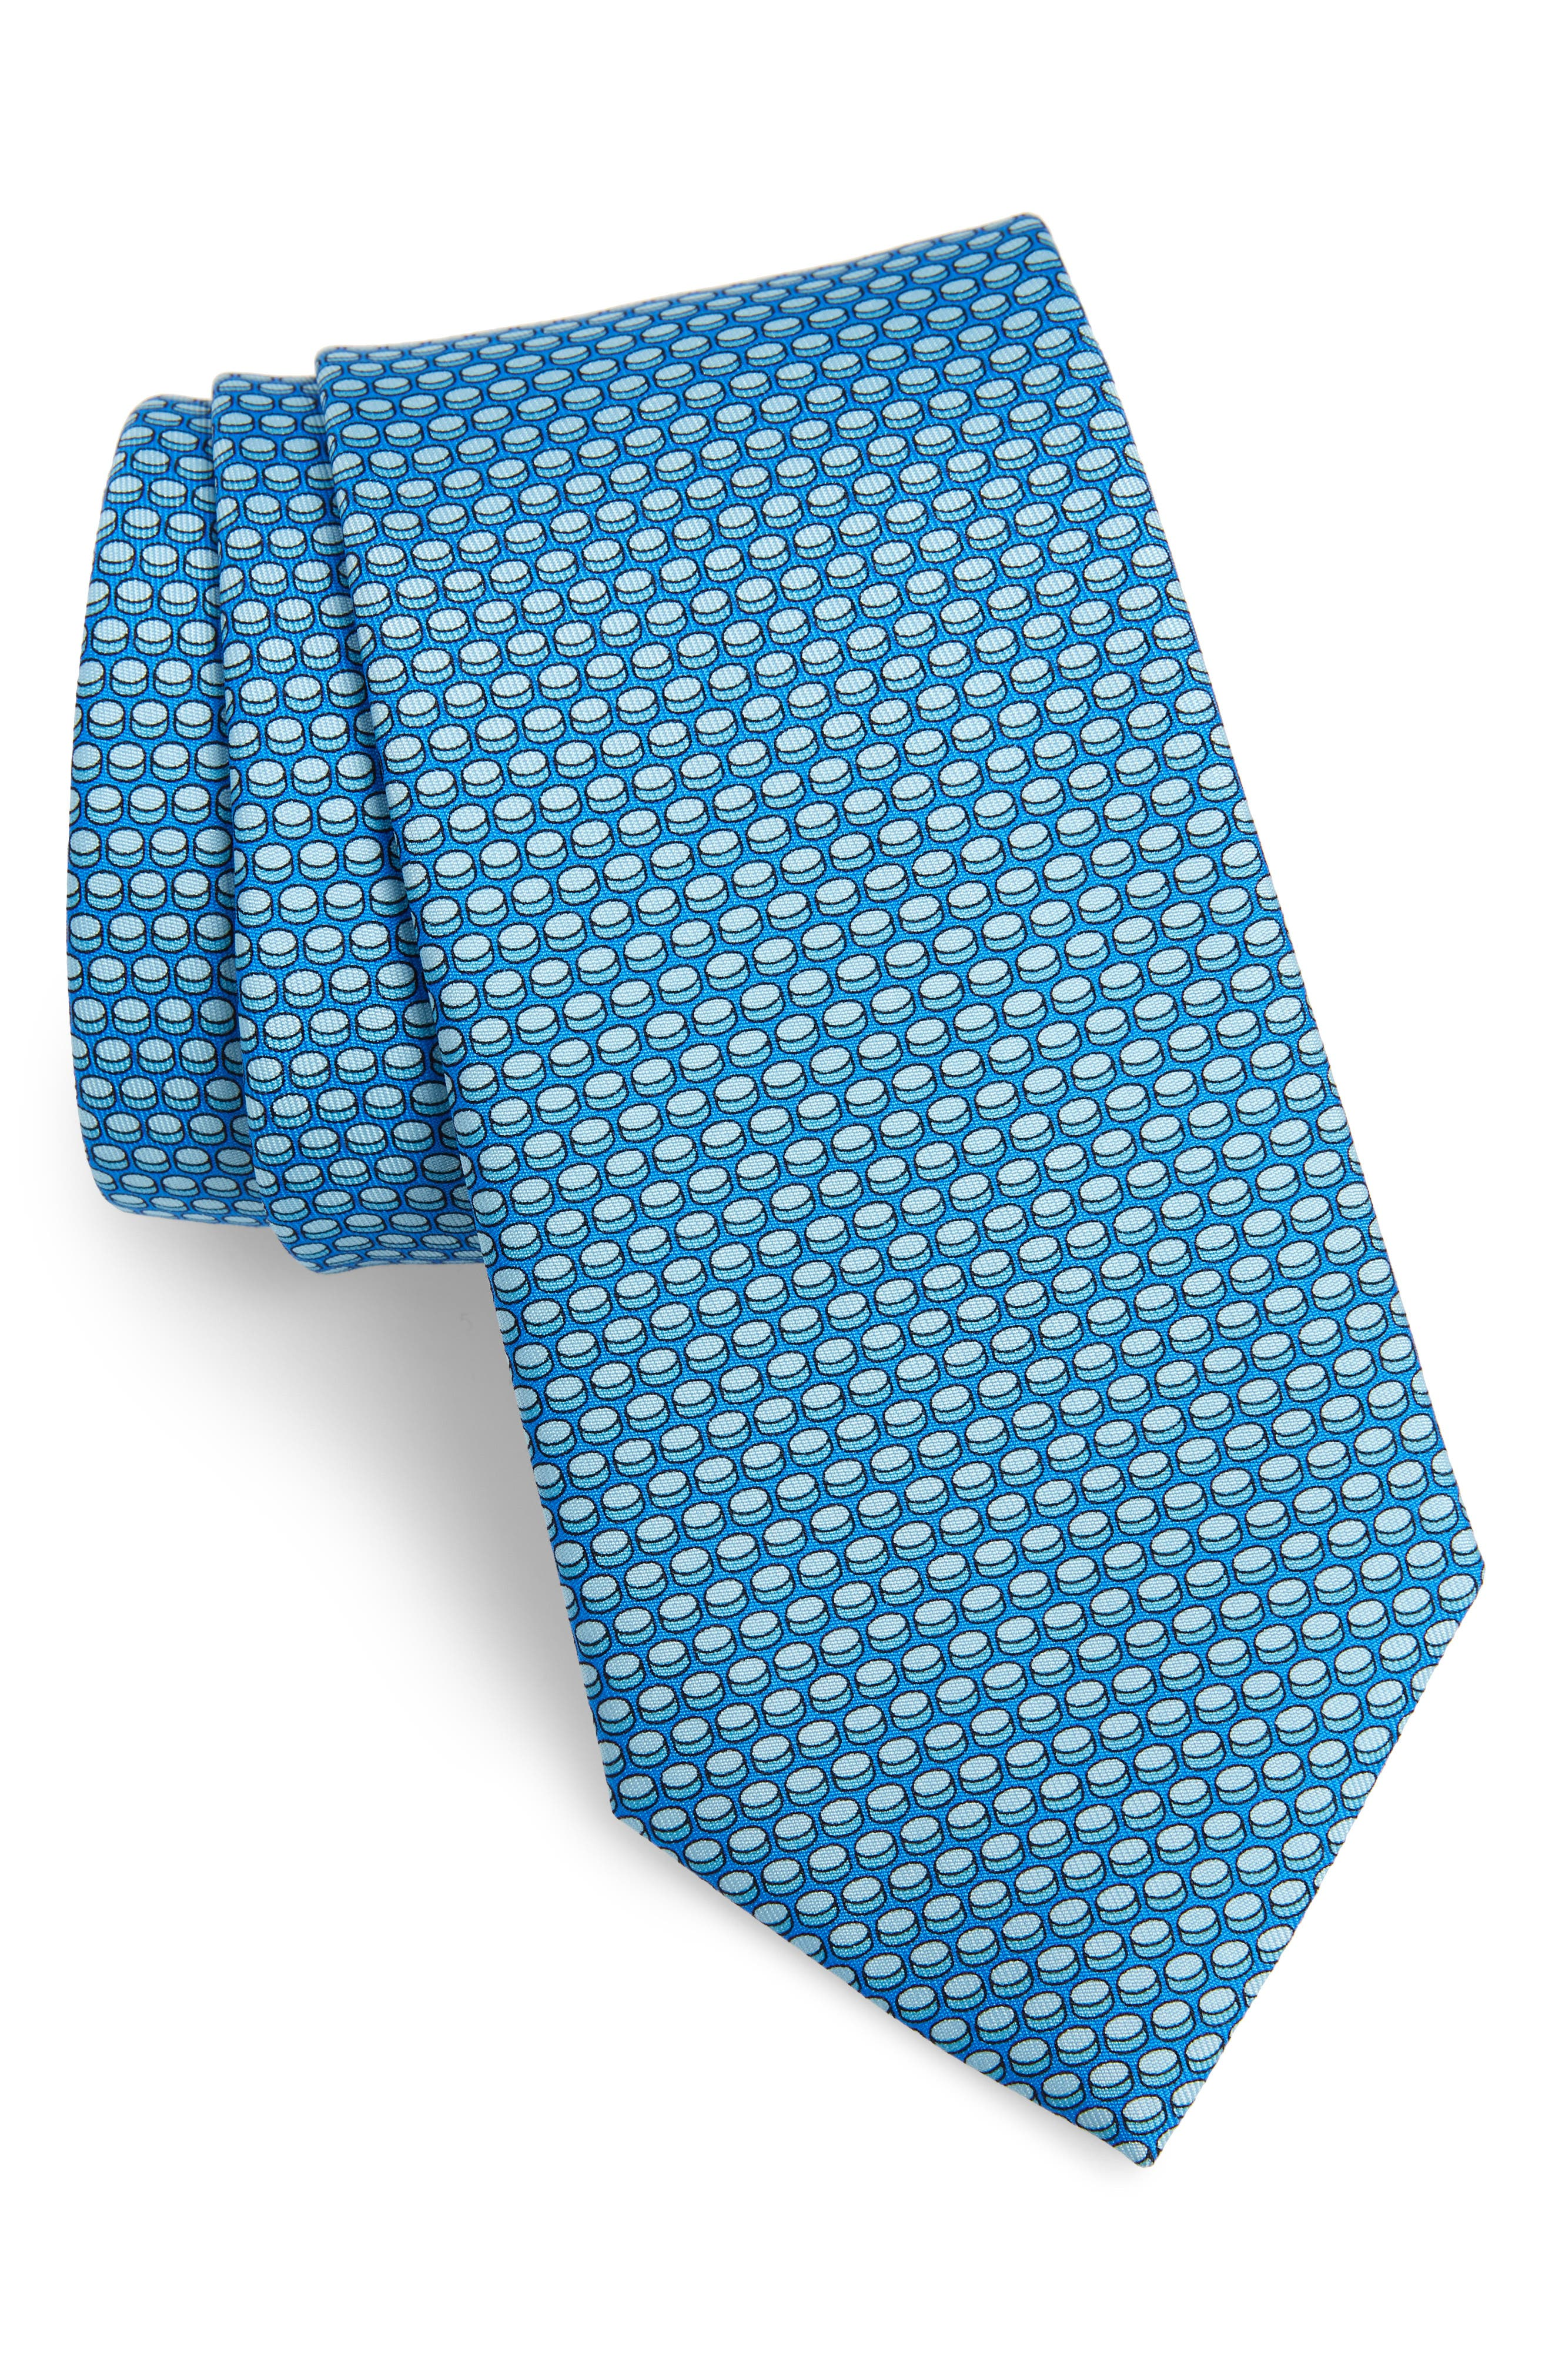 Hockey Puck Silk Tie,                         Main,                         color, BLUE